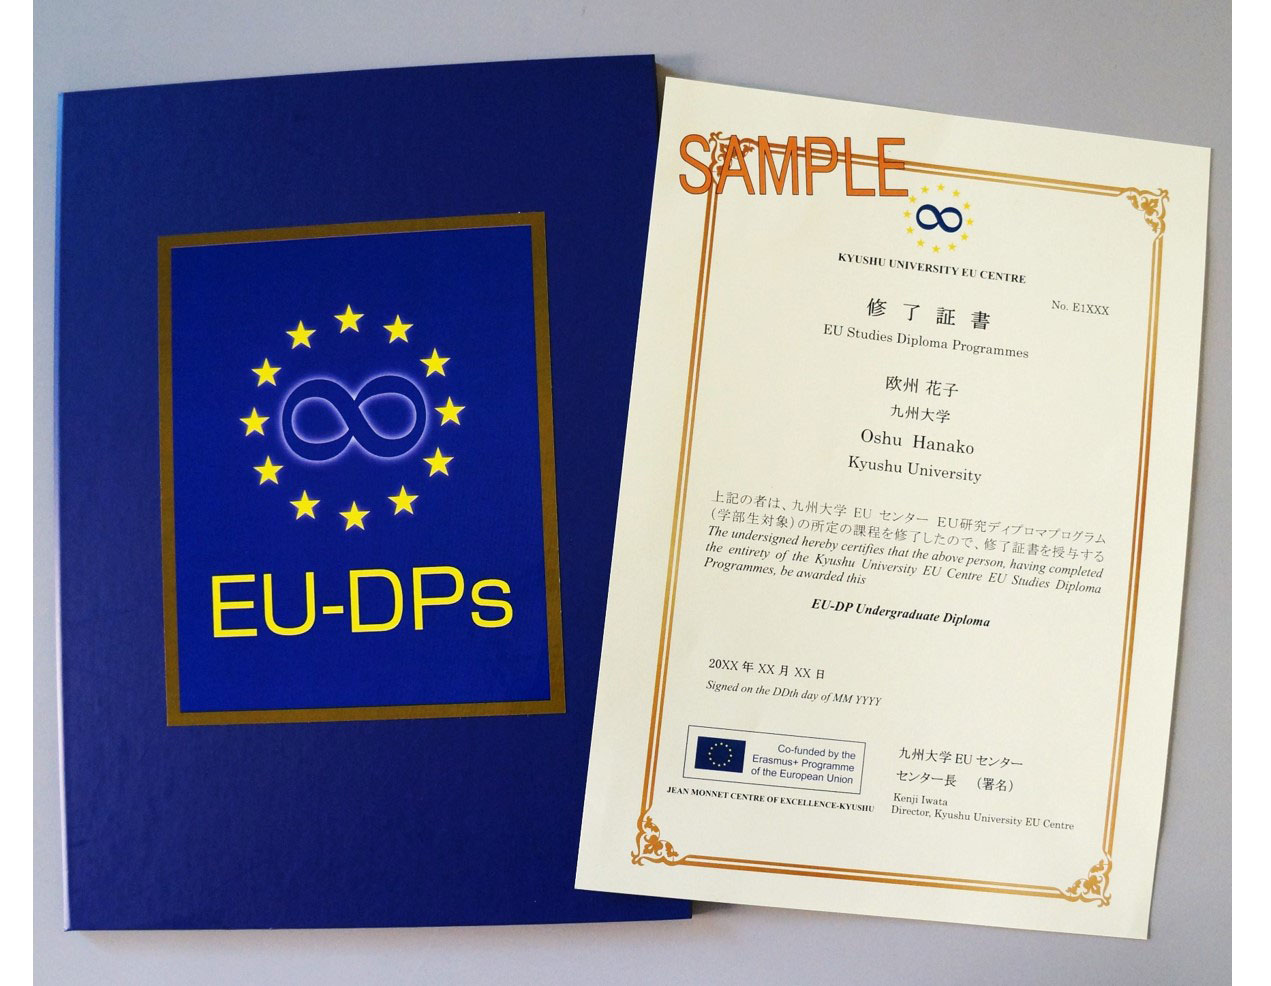 eu centre kyushu the european union studies diploma programmes eu dps provide students of kyushu university opportunities to study about the eu and eu member states